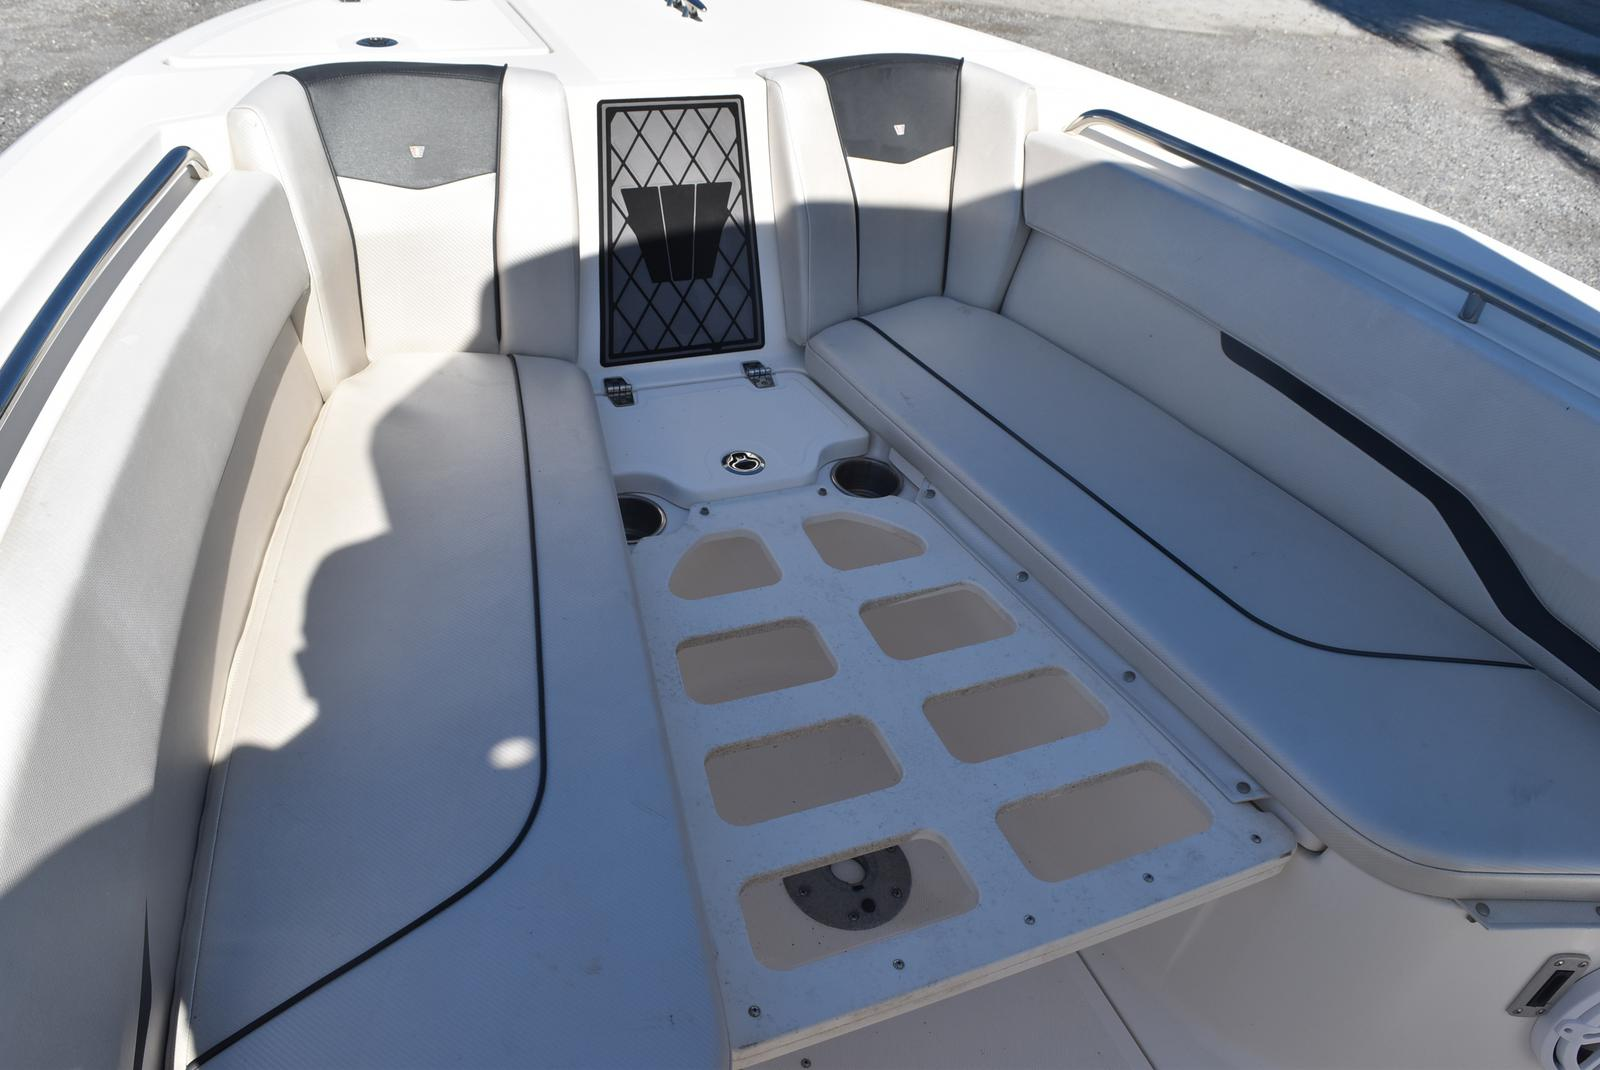 2016 Wellcraft boat for sale, model of the boat is 242 & Image # 19 of 19